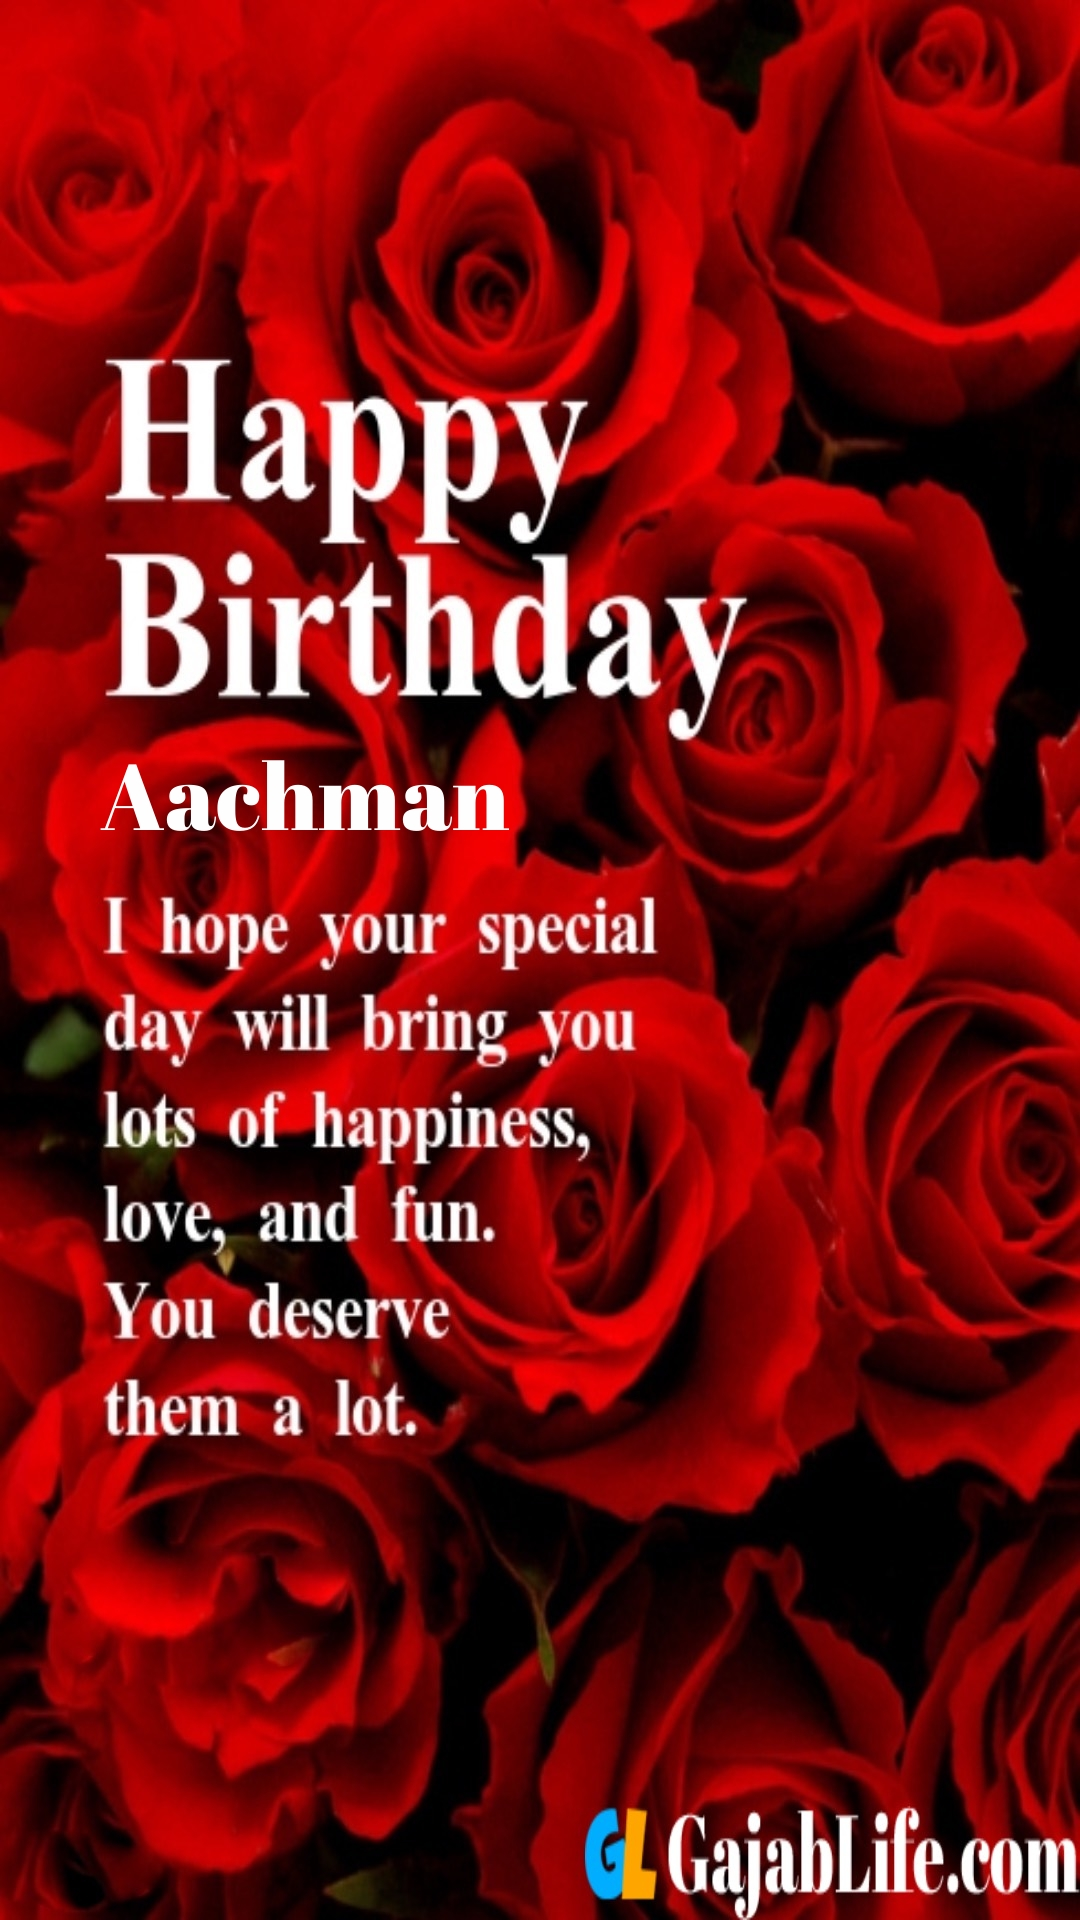 Aachman birthday greeting card with rose & love